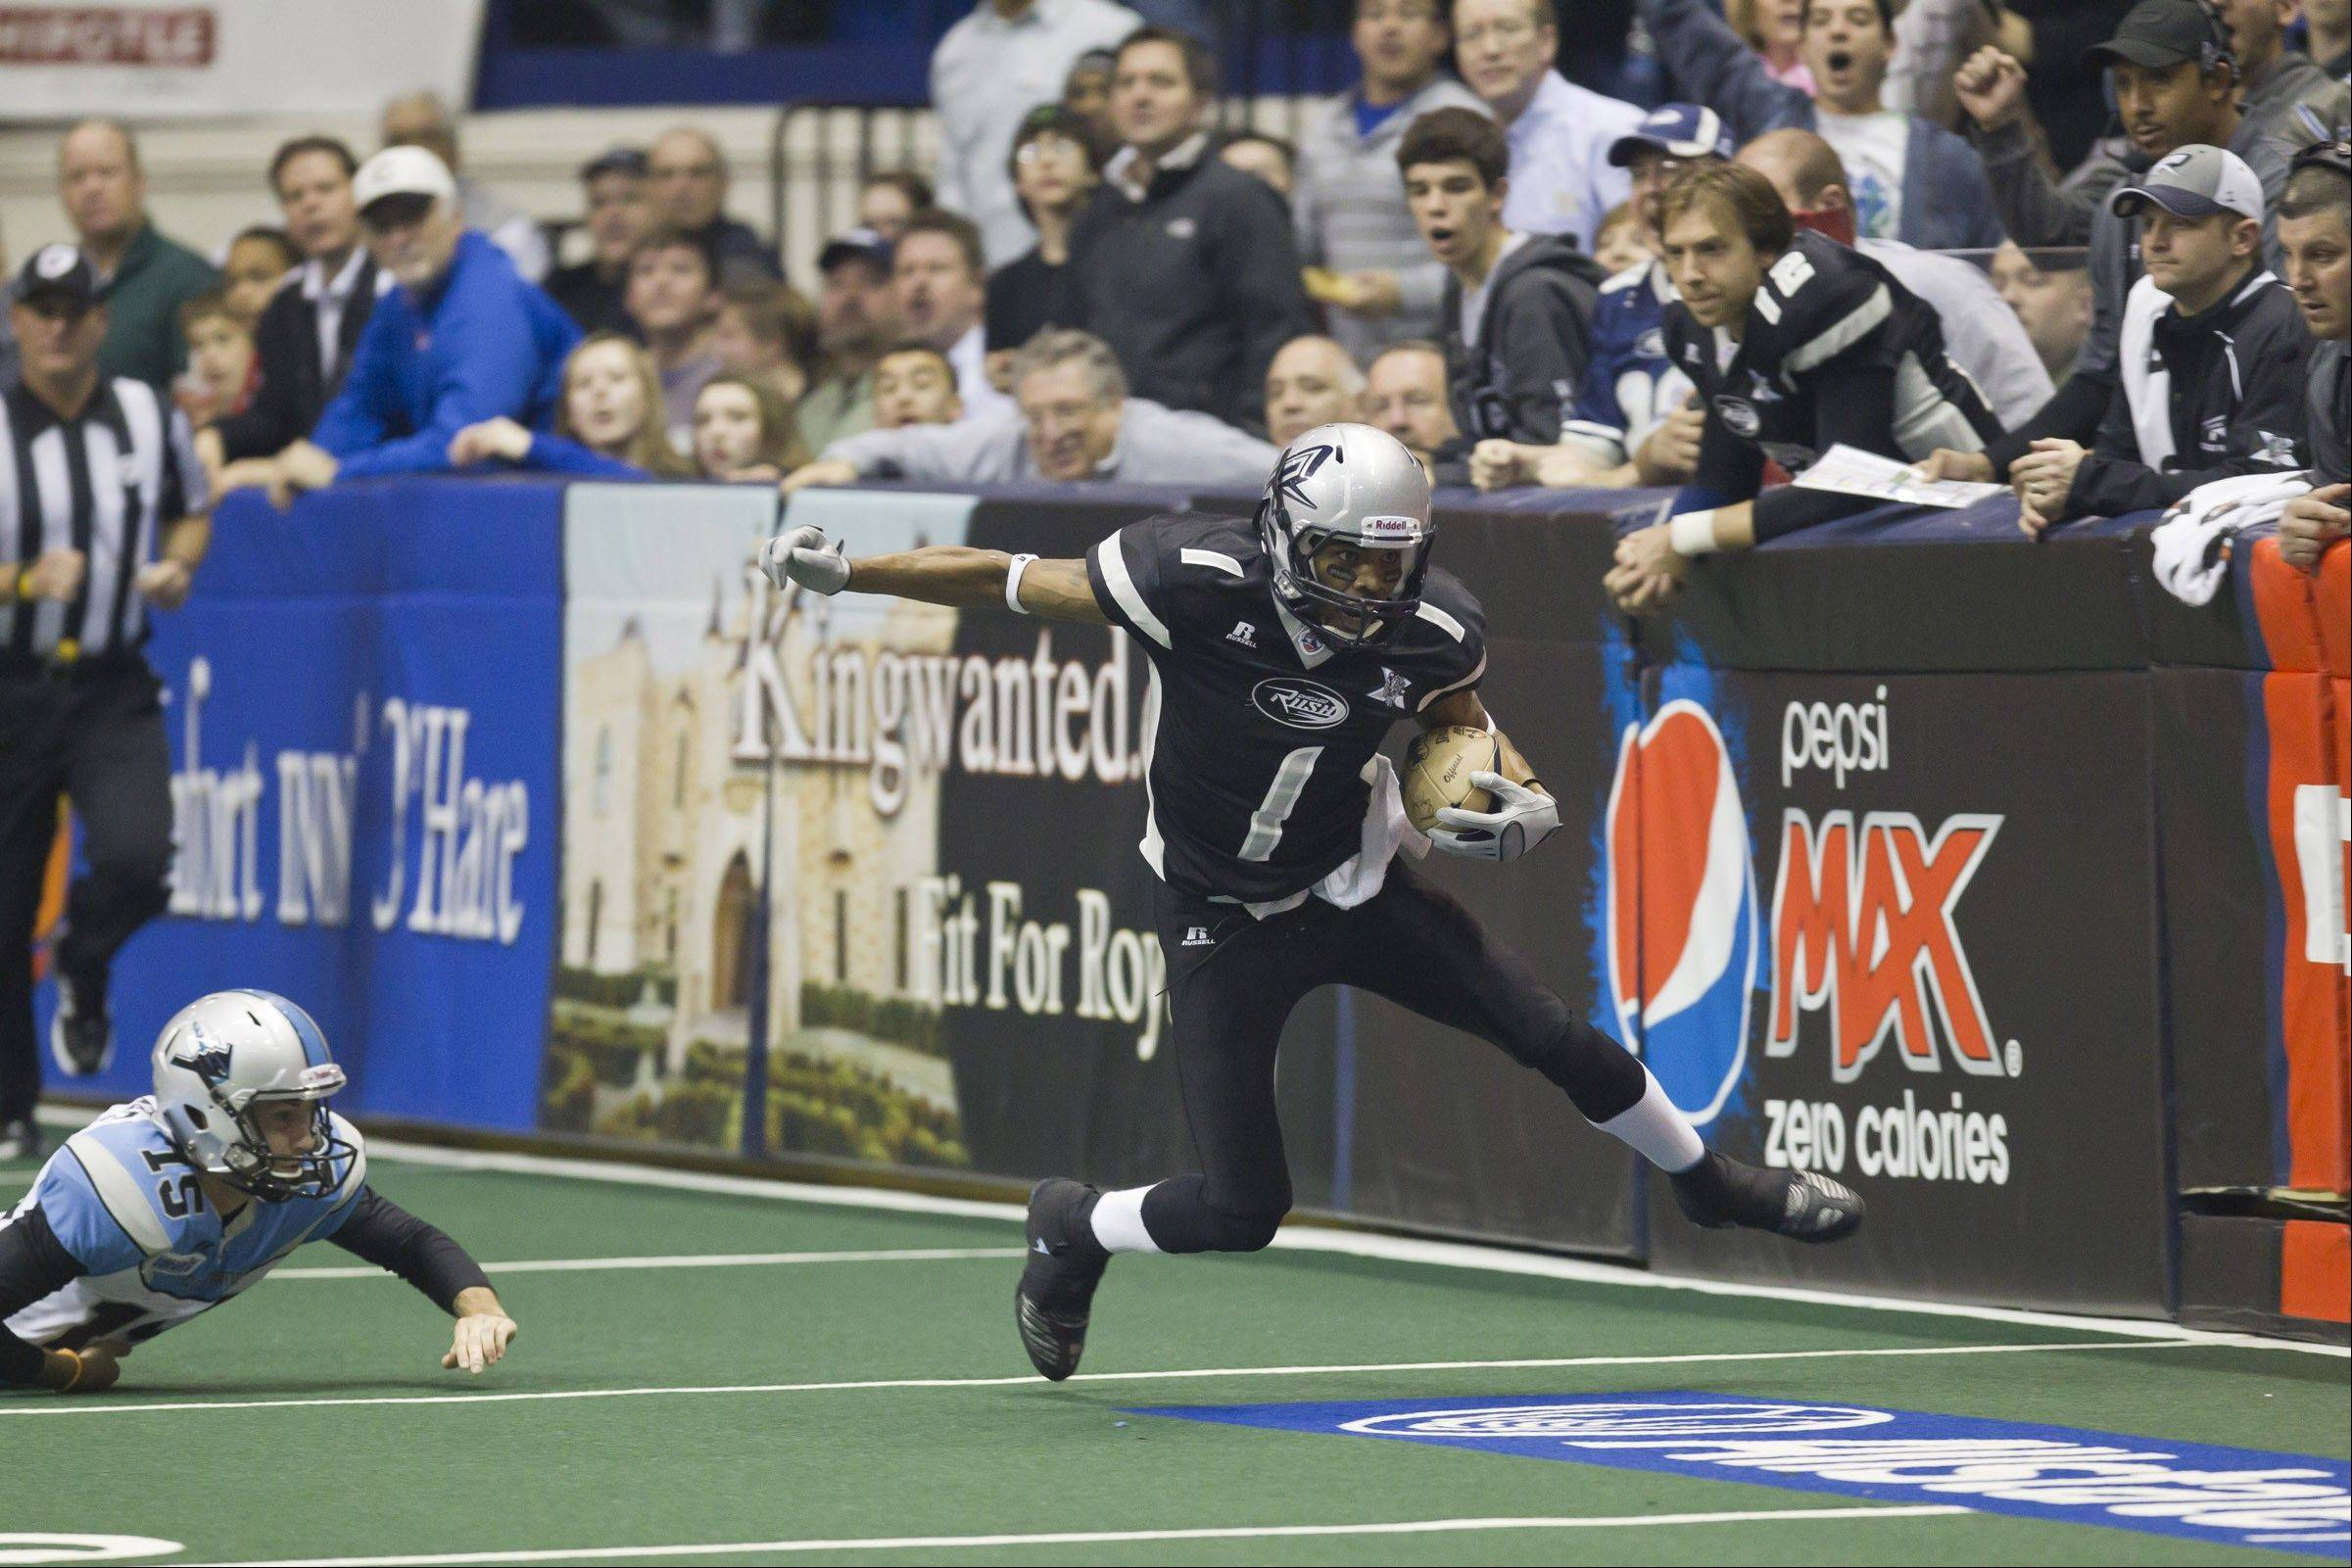 Chicago Rush wide receiver Reggie Gray returns for the team's 2012 Arena Football League season, which begins Saturday at Allstate Arena. Gray caught 49 TD passes last season, and scored 4 more touchdowns on kick returns.